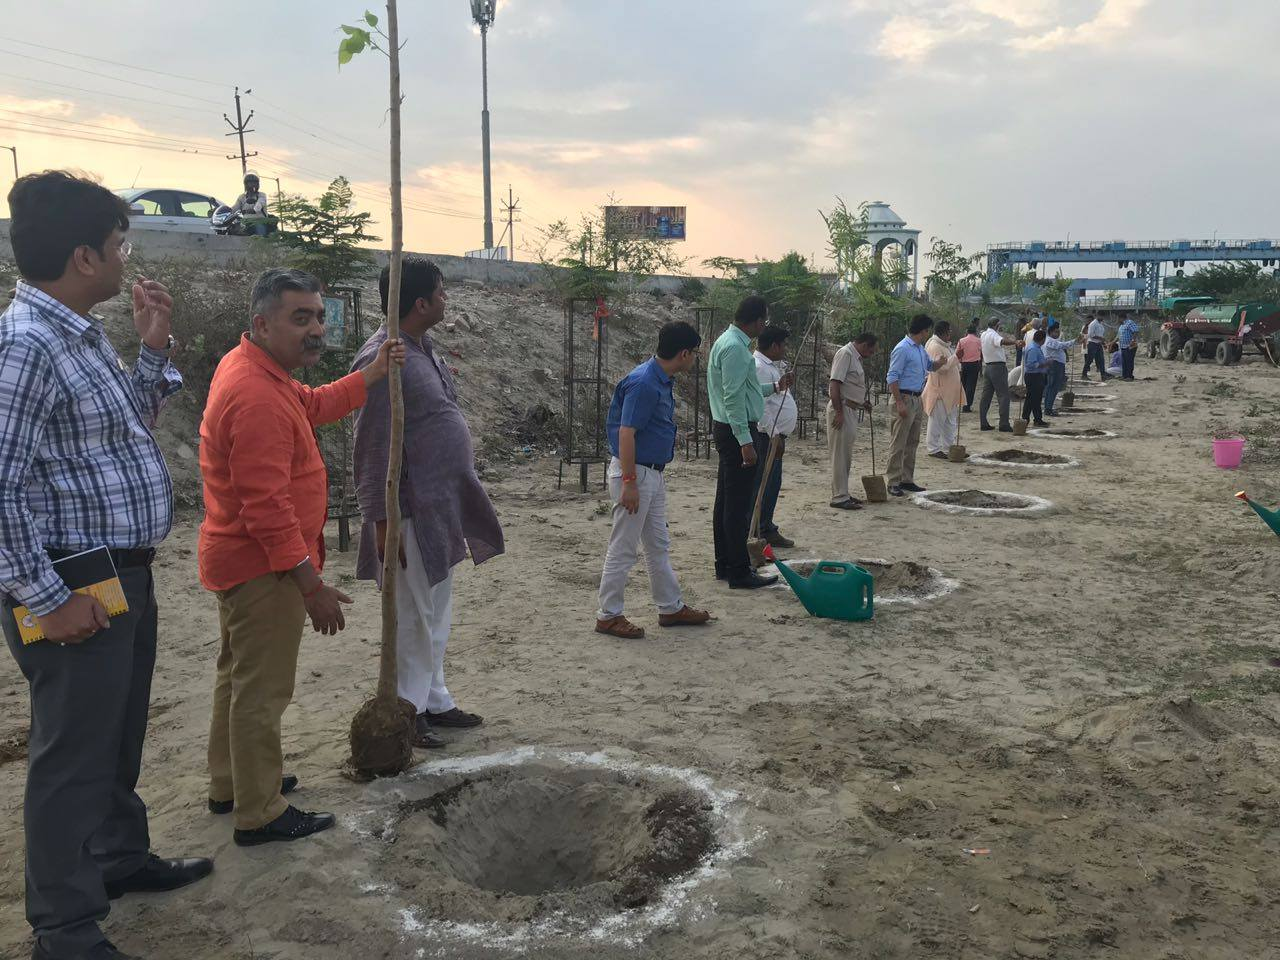 On day 4 of Ganga Vriksharopan Abhiyan 2018, plantation activities was carried out in Uttarkashi and Haridwar (Uttarakhand) Hardoi, Kanpur and Farrukhabad (Uttar Pradesh).